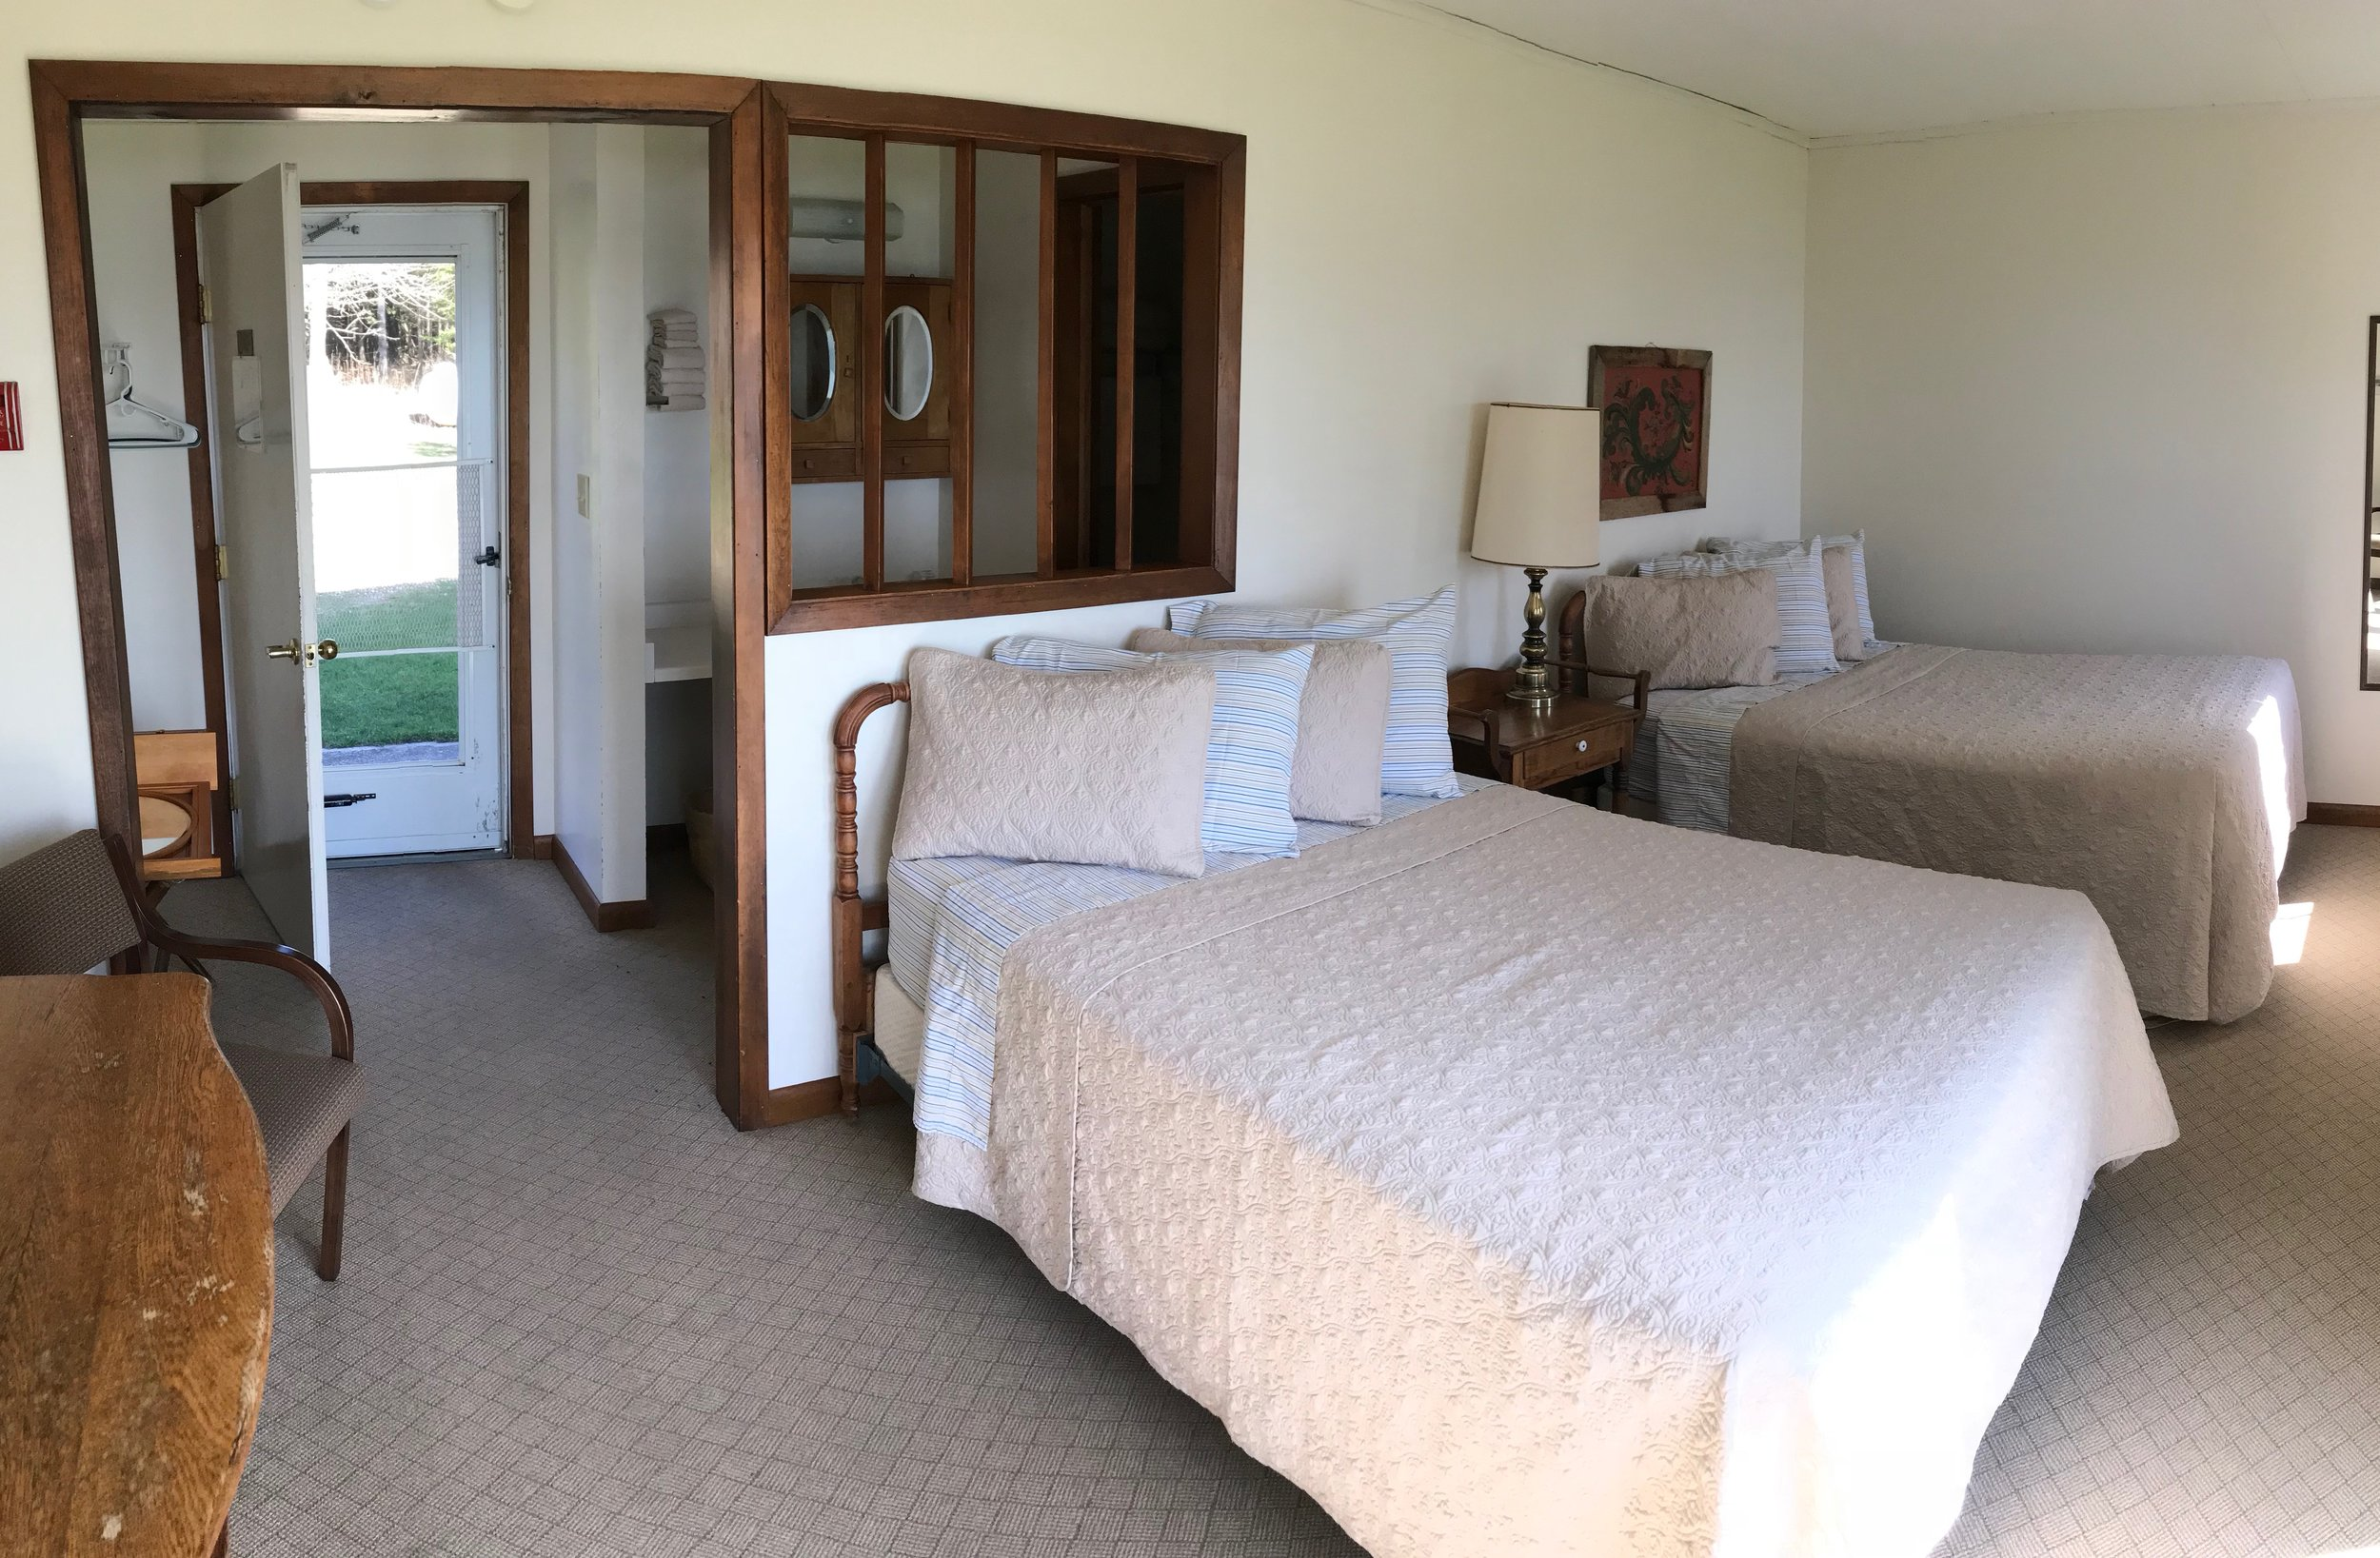 Room 12 - 2 double beds, private entrance + patio